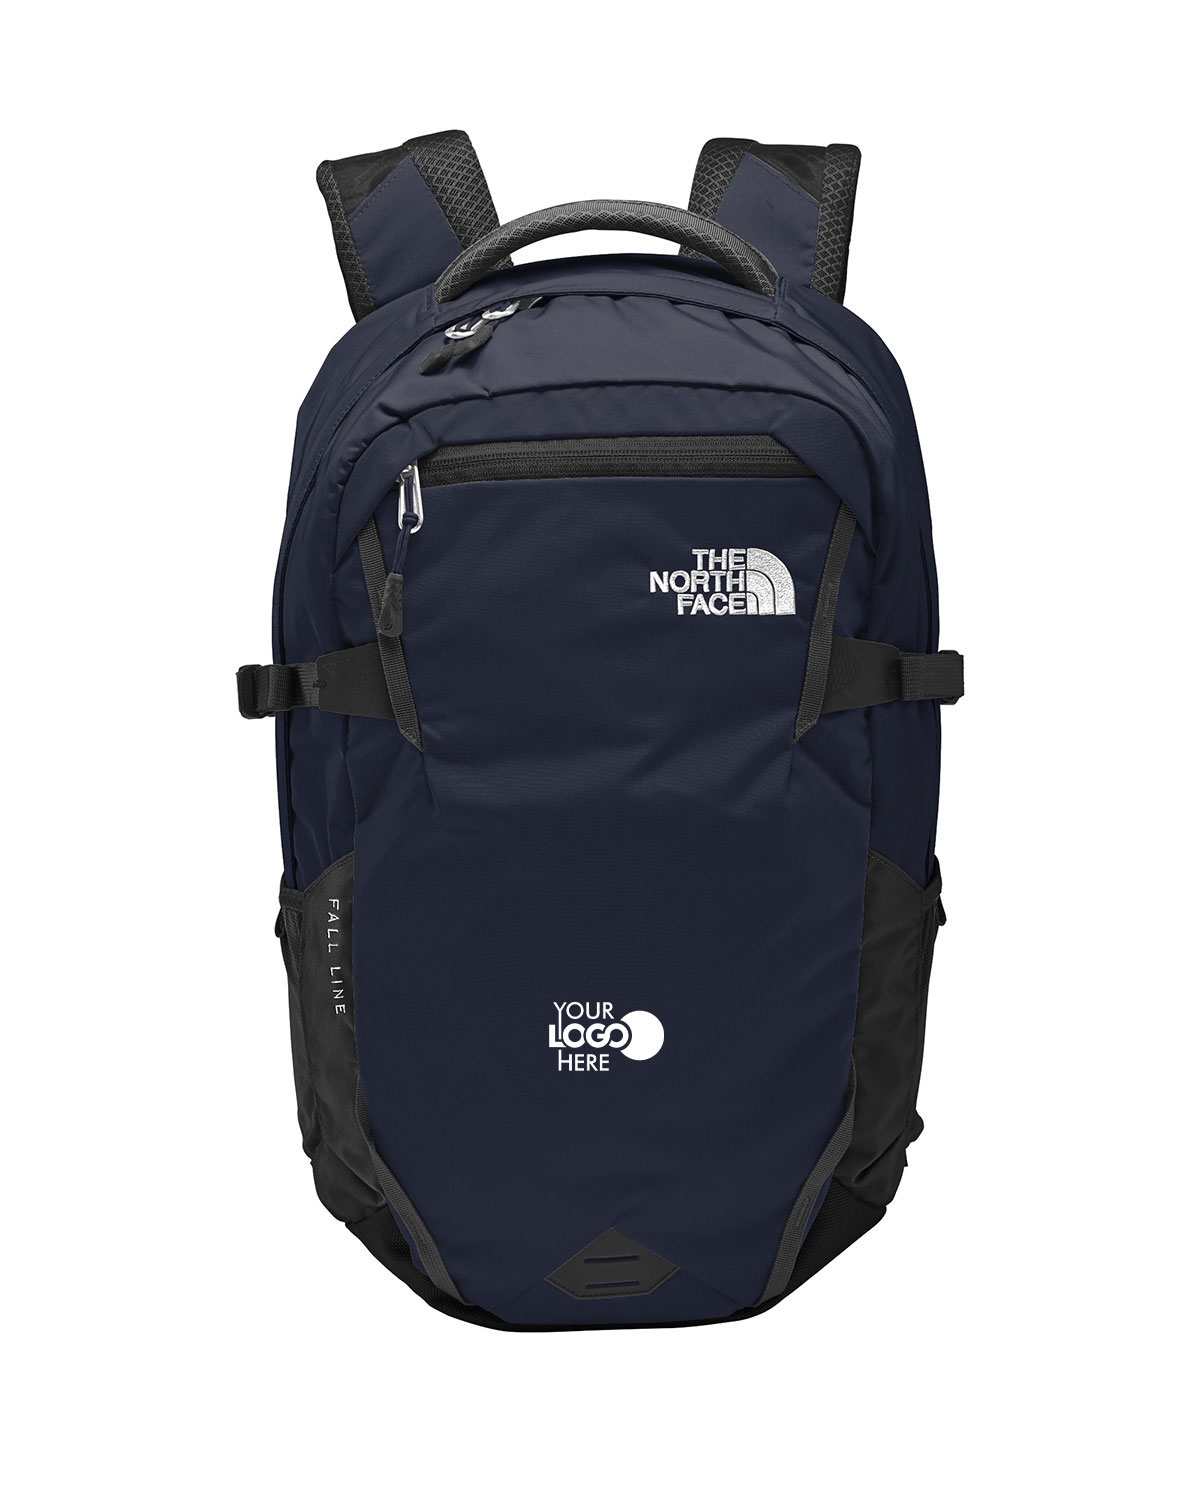 The North Face NF0A3KX7 Fall Line Backpack